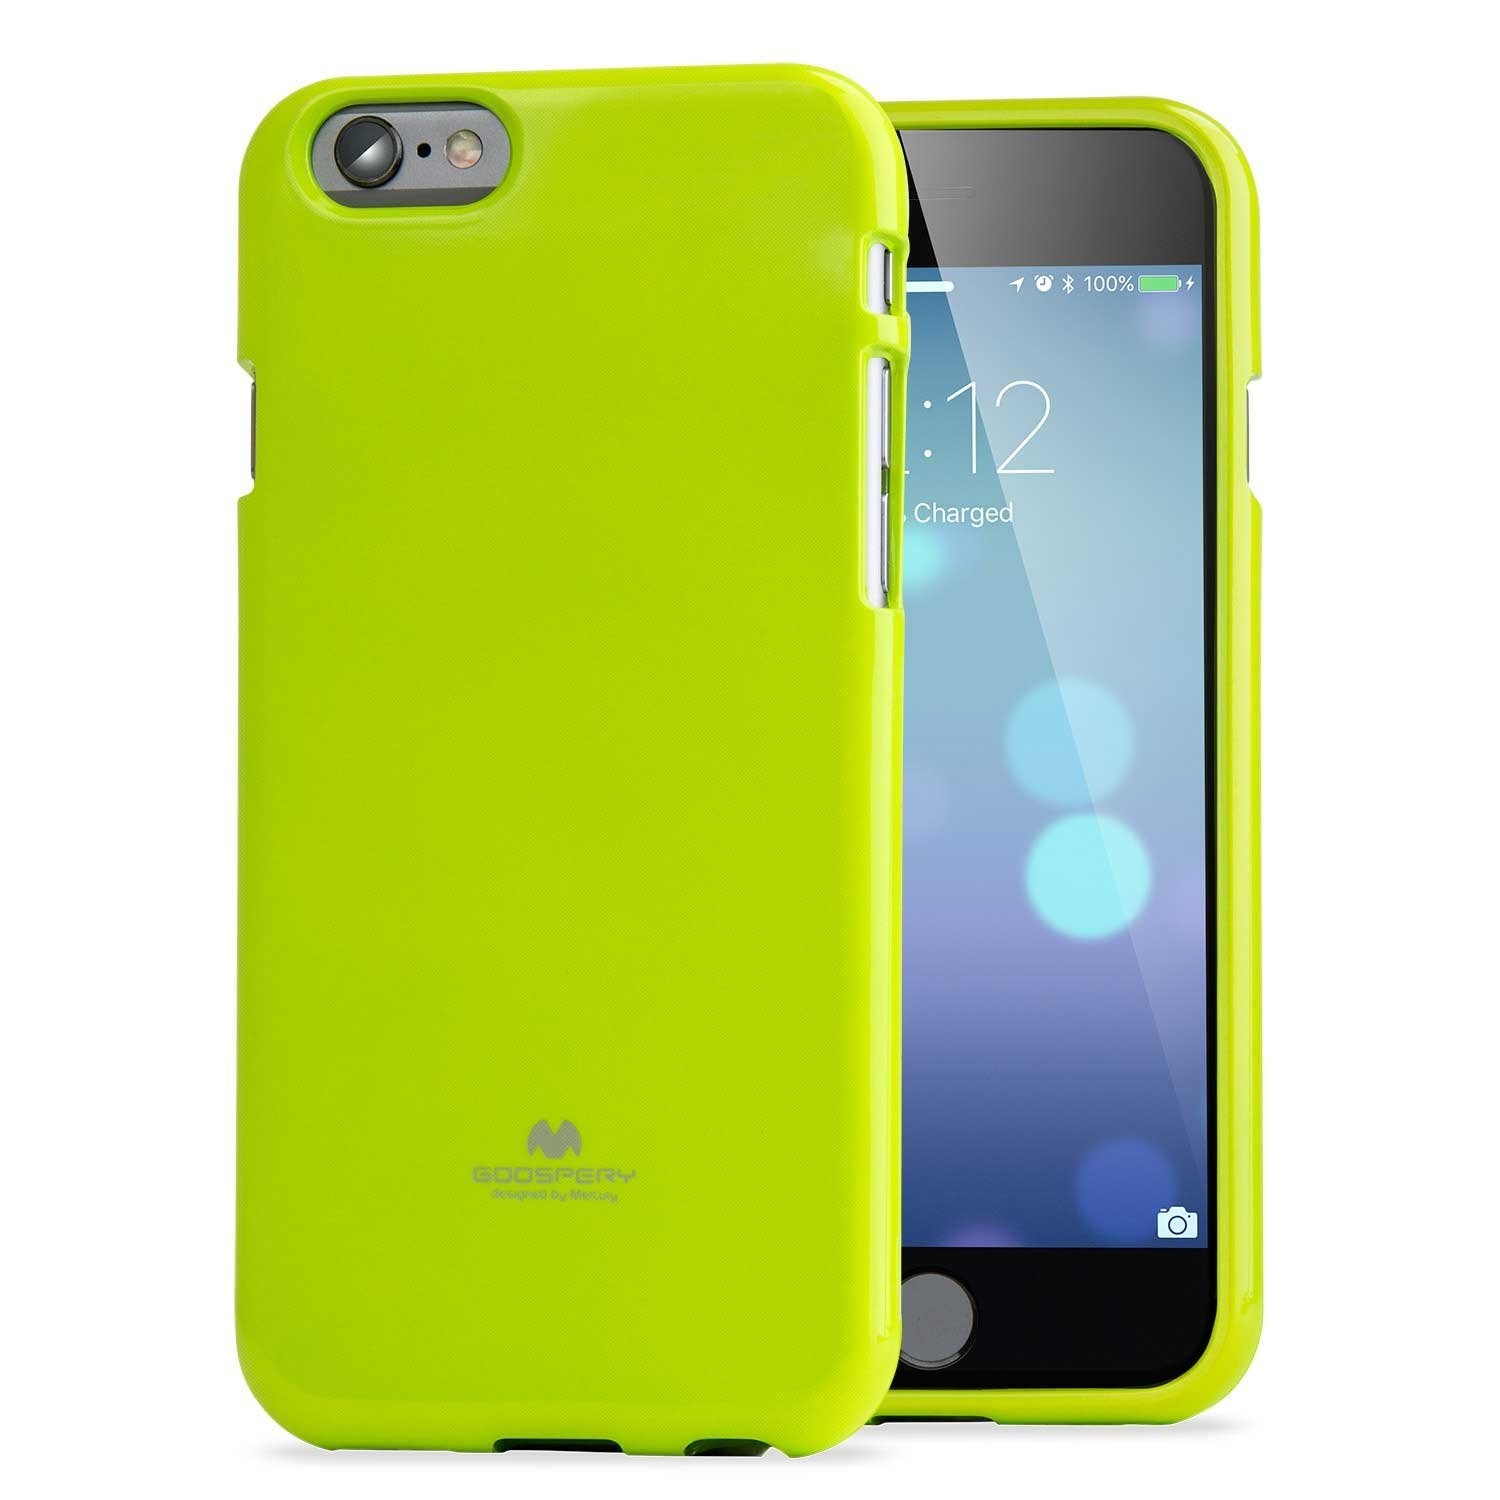 Pouzdro / kryt pro Apple iPhone 6 / 6S - Mercury, Jelly Case Lime